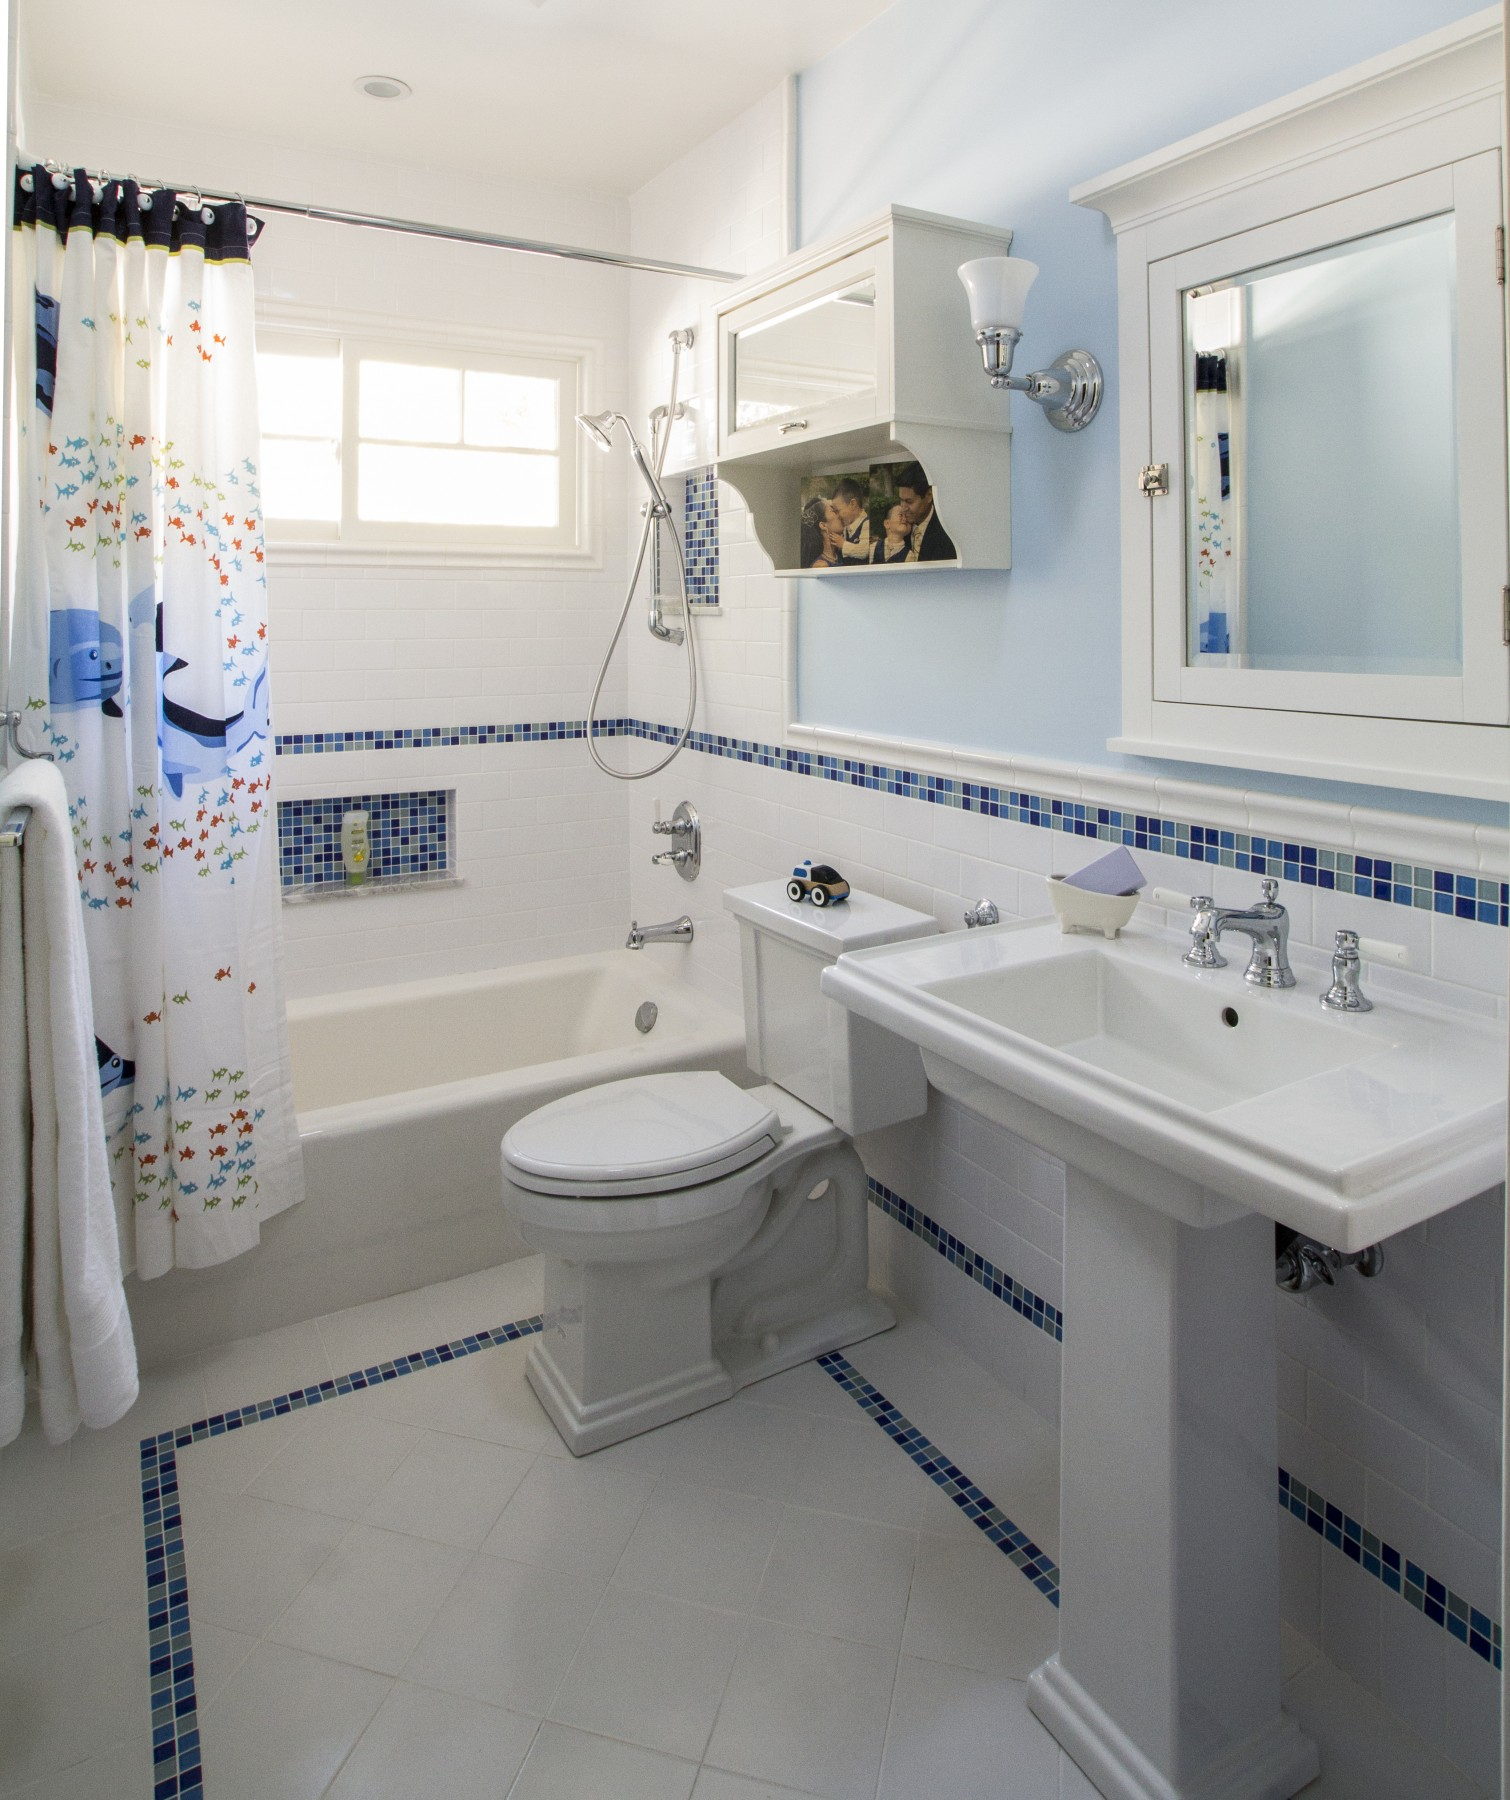 A boys bath with pedestal sink and decorative mosaic tile